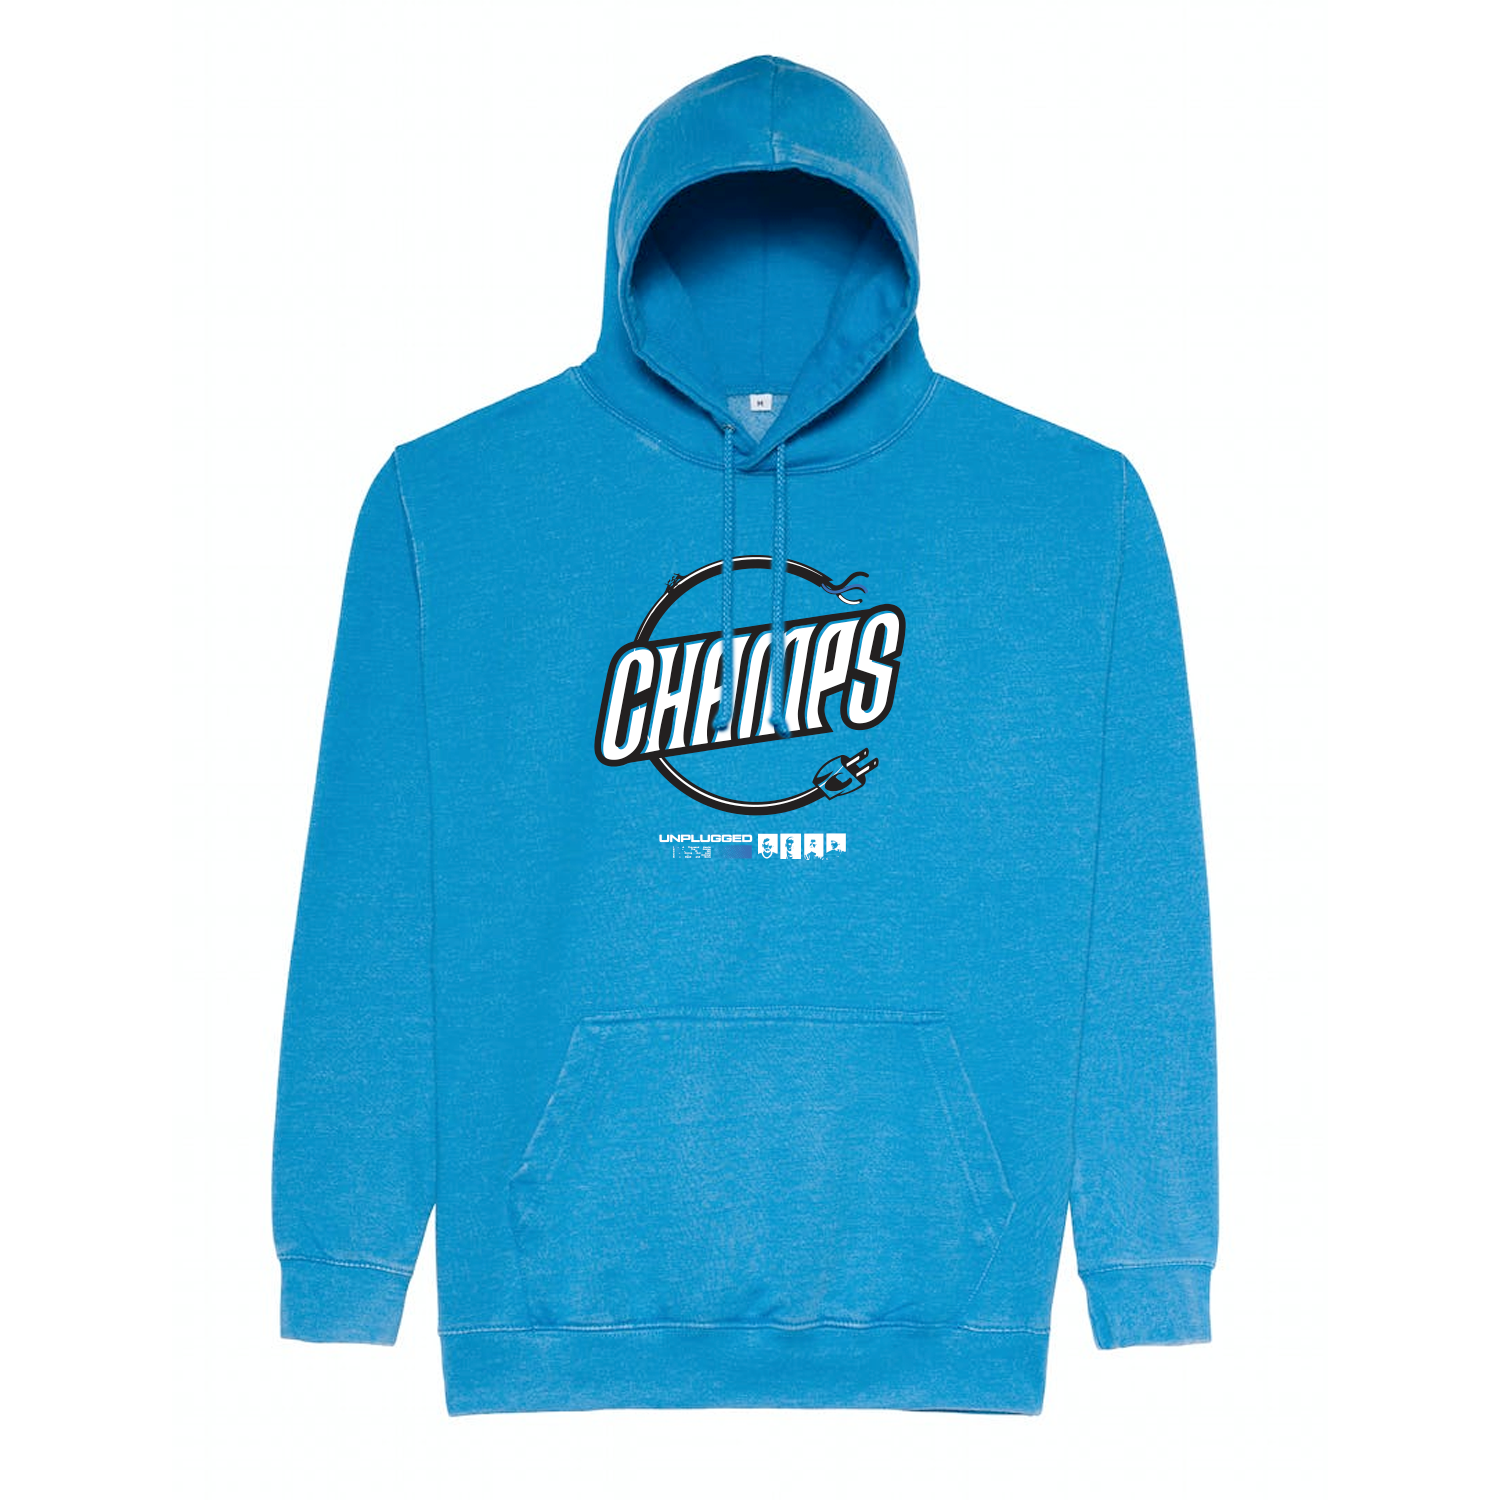 State Champs 'Unplugged' Royal Blue Hoodie